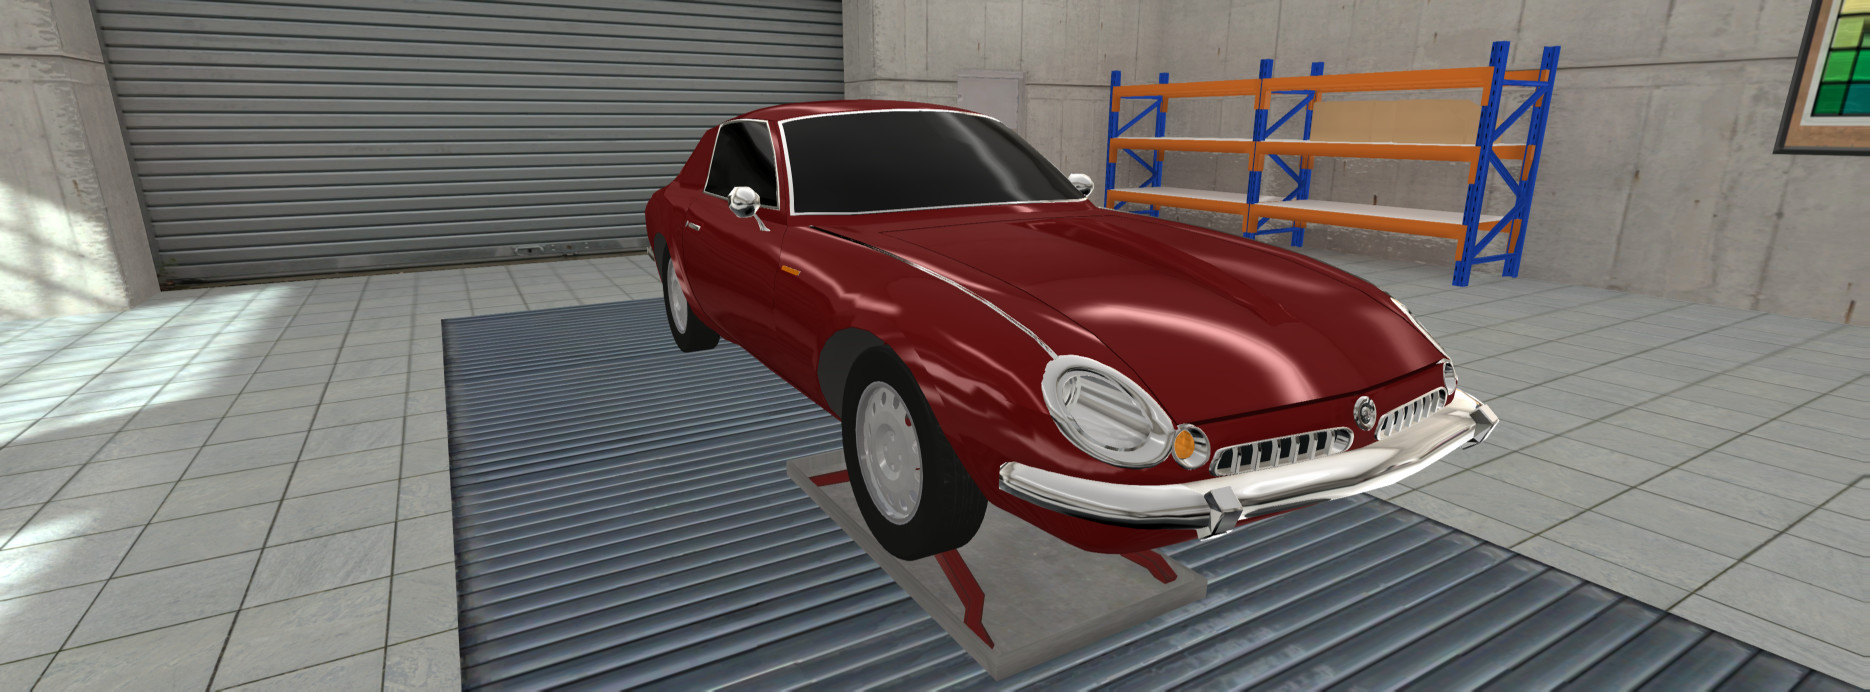 automation the car company tycoon game download free